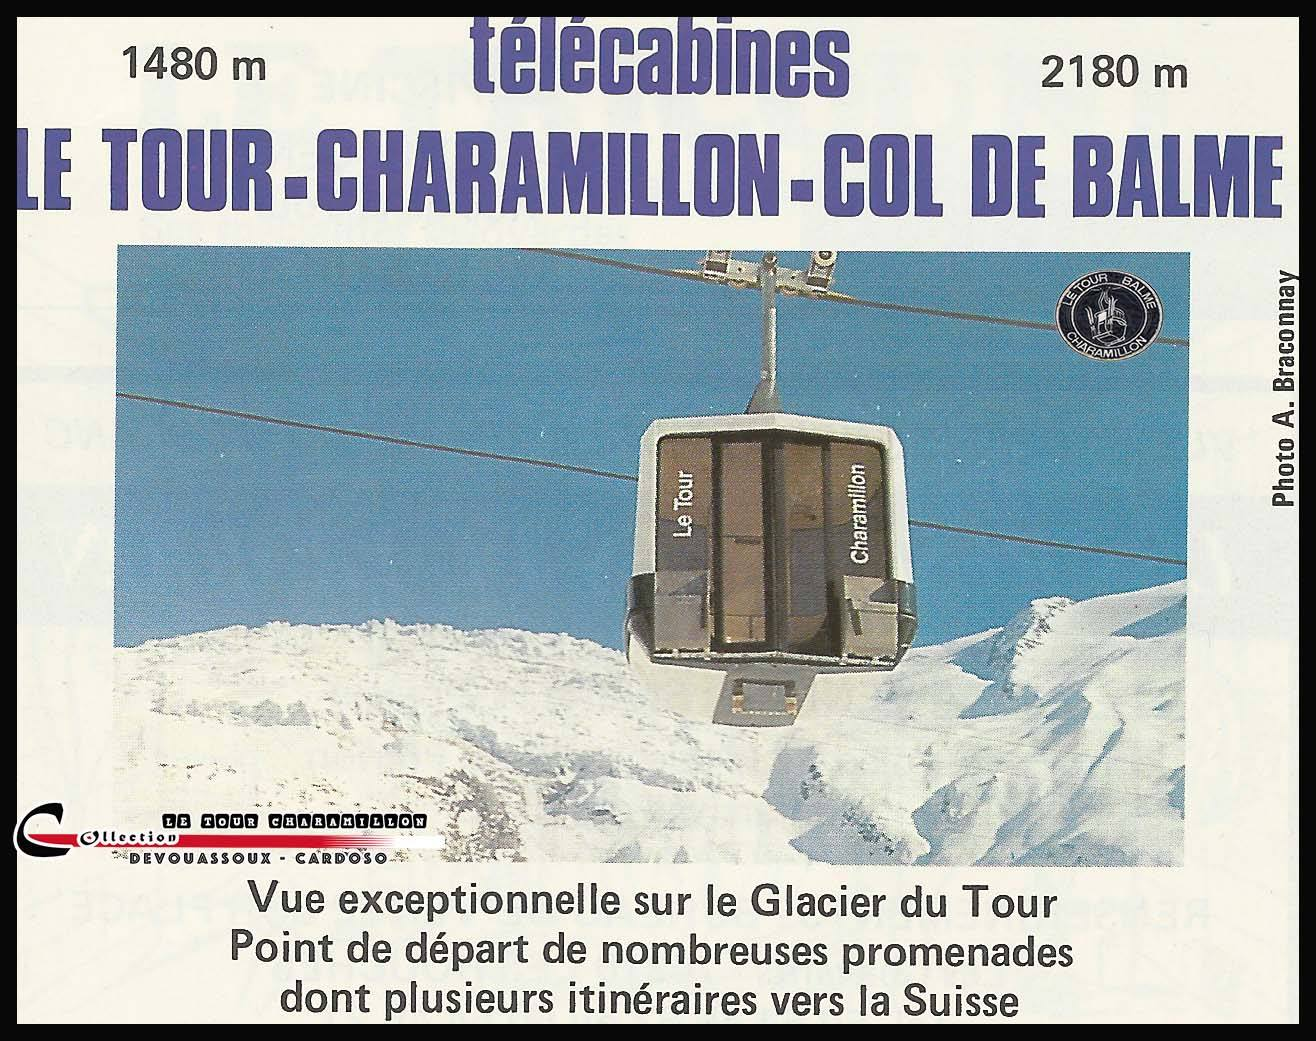 The old Le Tour lift